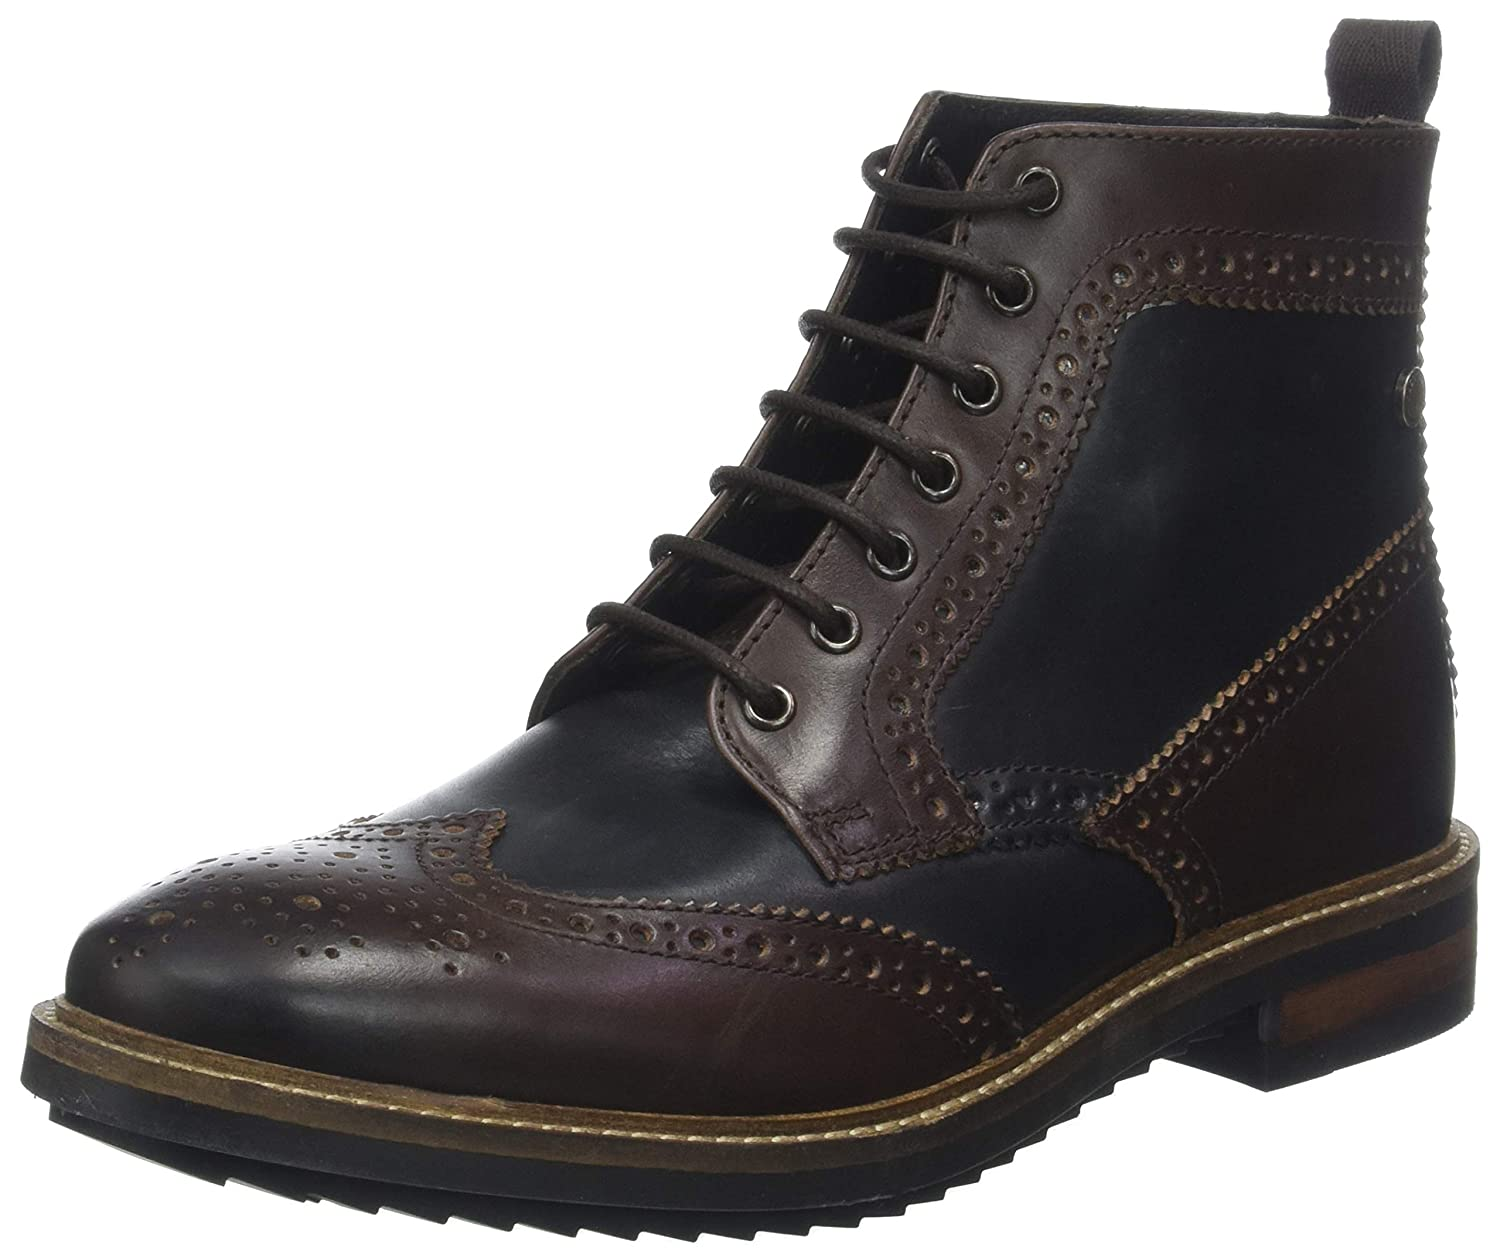 TALLA 42 EU. Base London Hopkins - Botines Hombre